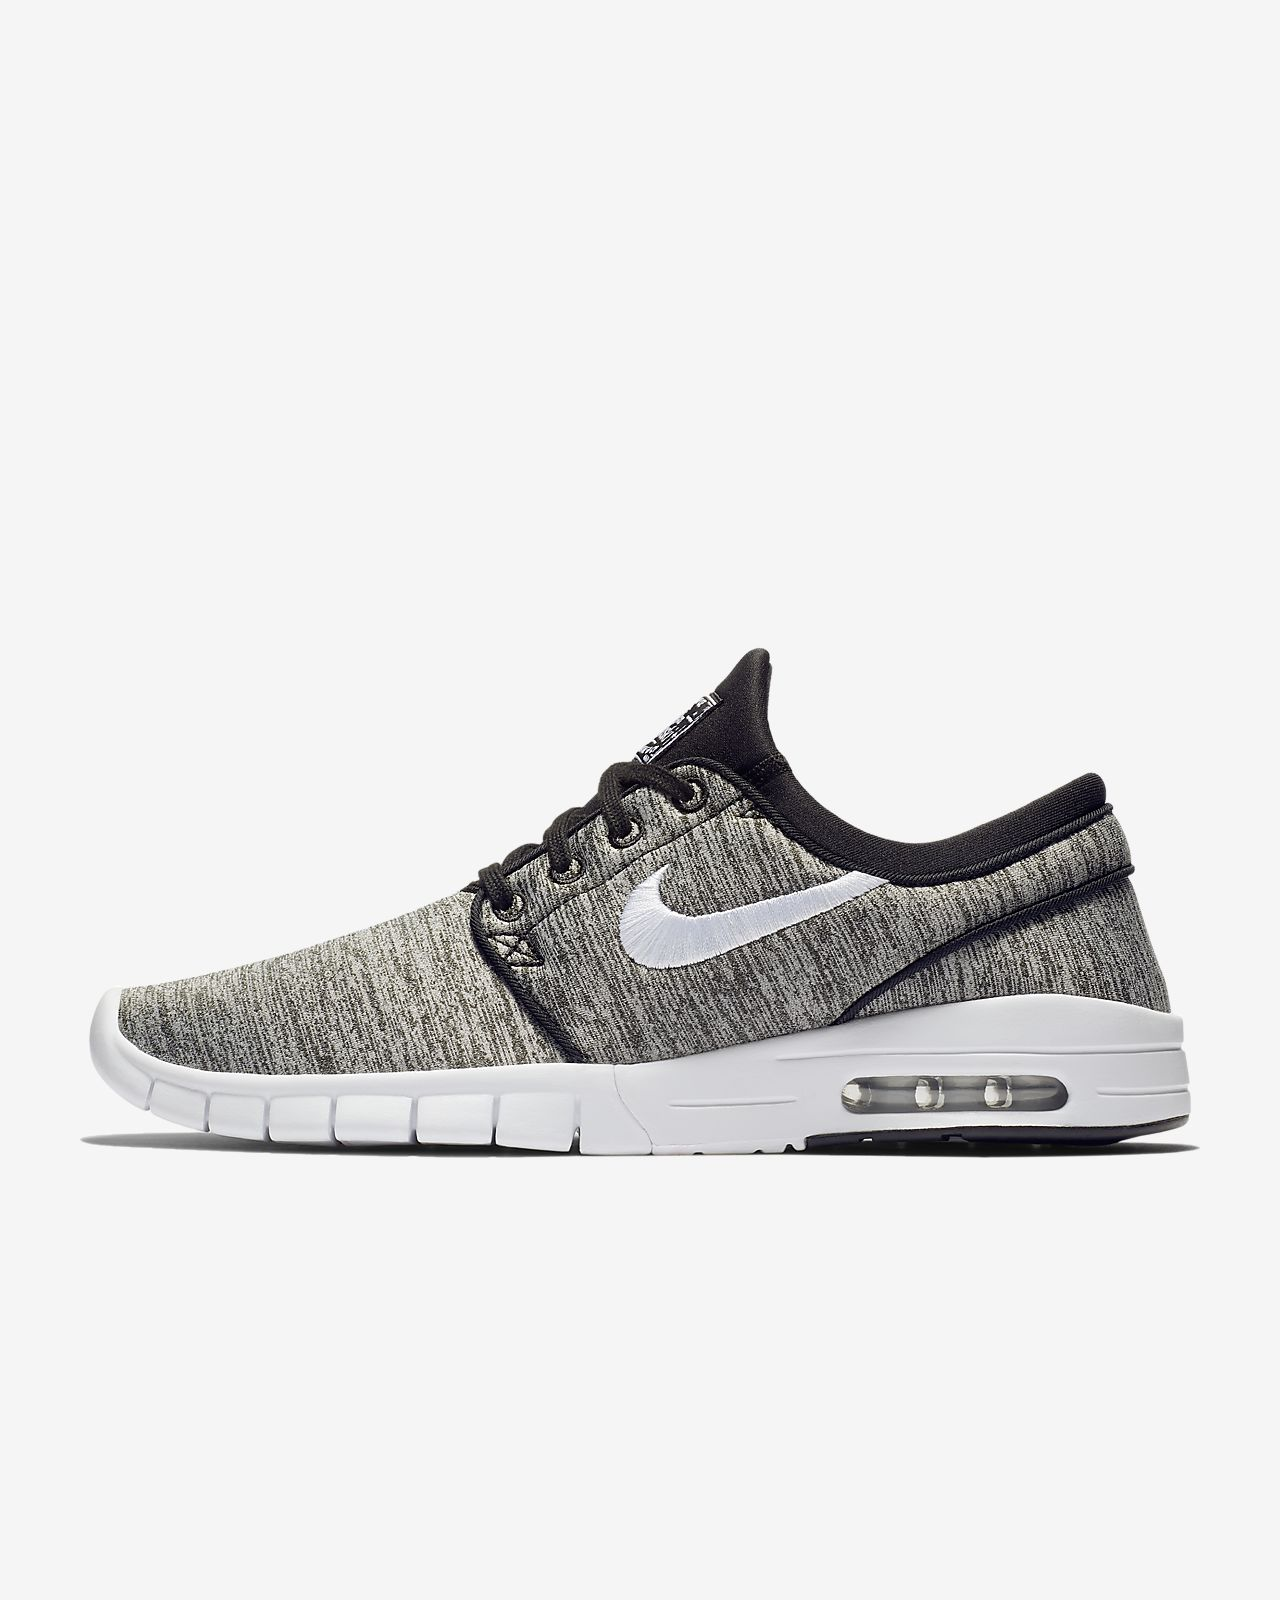 outlet store 13a67 6292f Low Resolution Nike SB Stefan Janoski Max Skate Shoe Nike SB Stefan Janoski  Max Skate Shoe